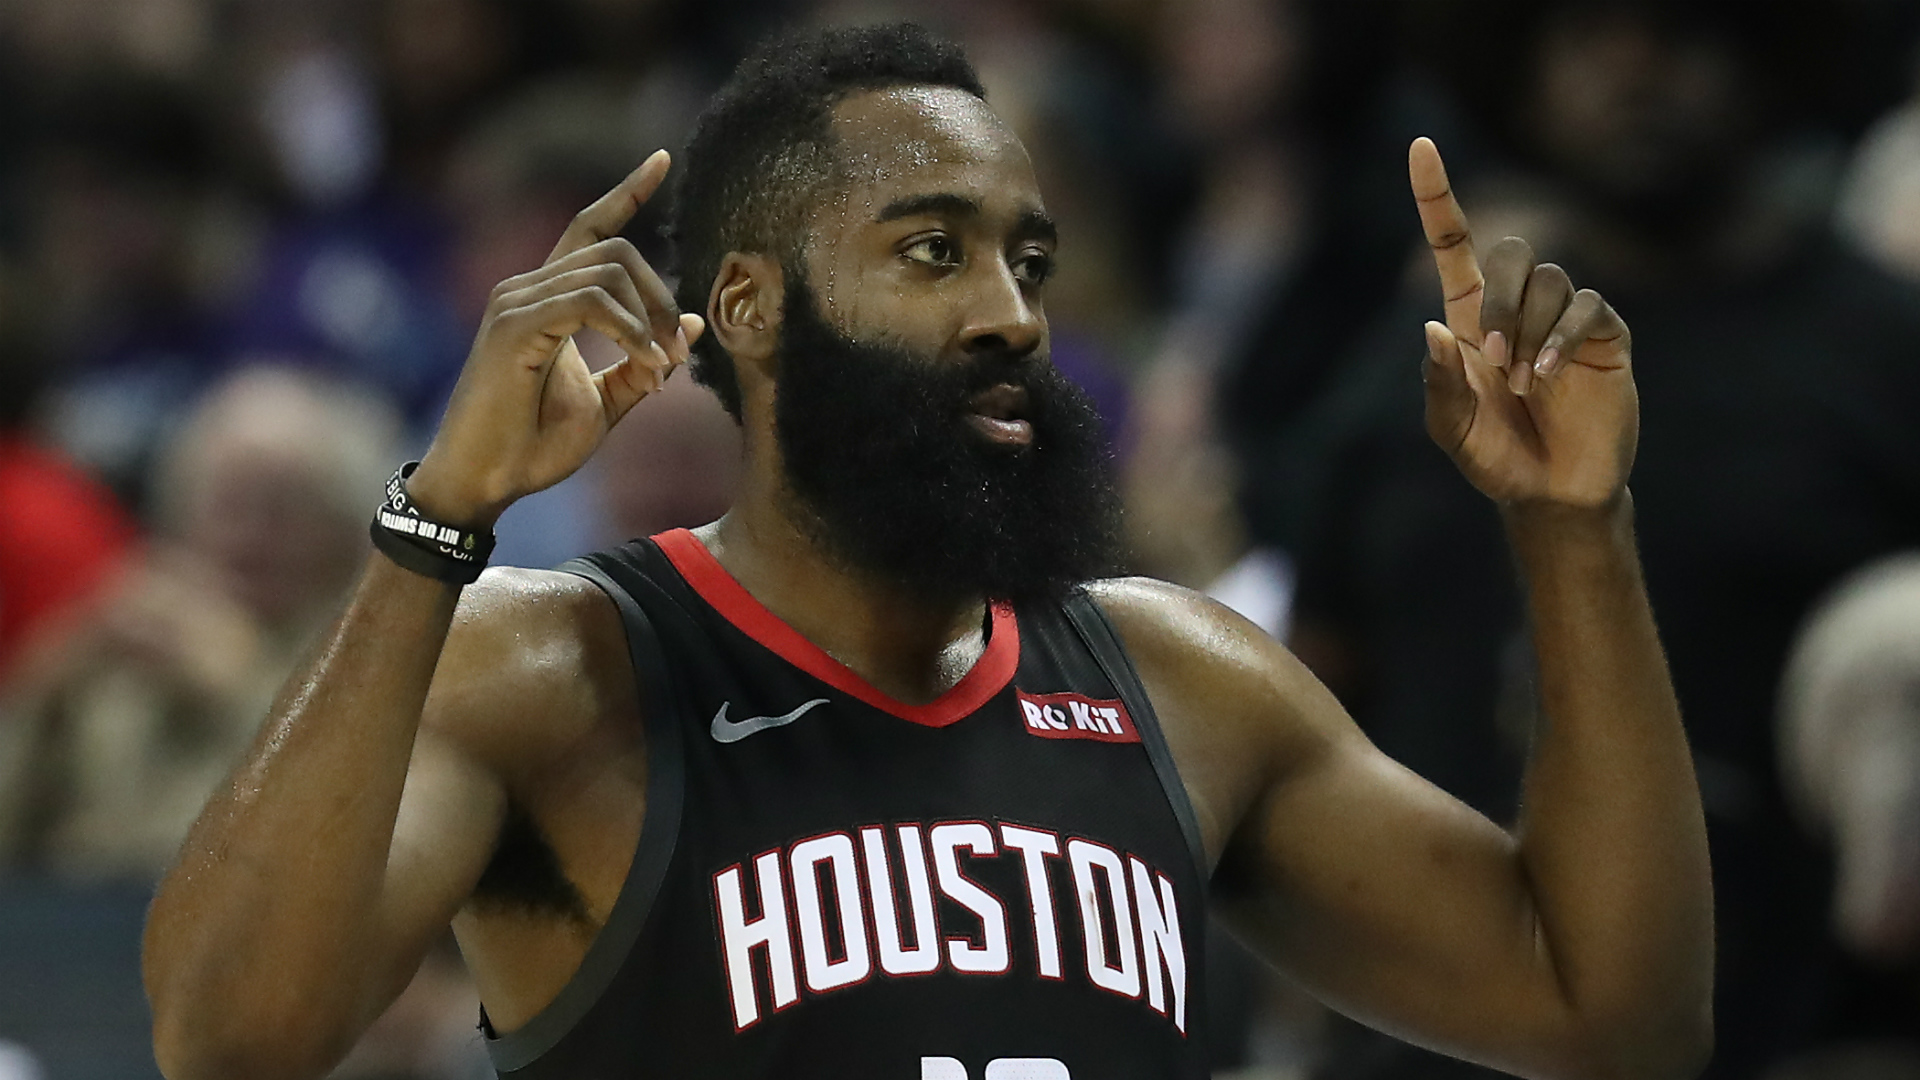 """Russell Westbrook's arrival will make the Houston Rockets successful, according to an """"excited"""" James Harden."""